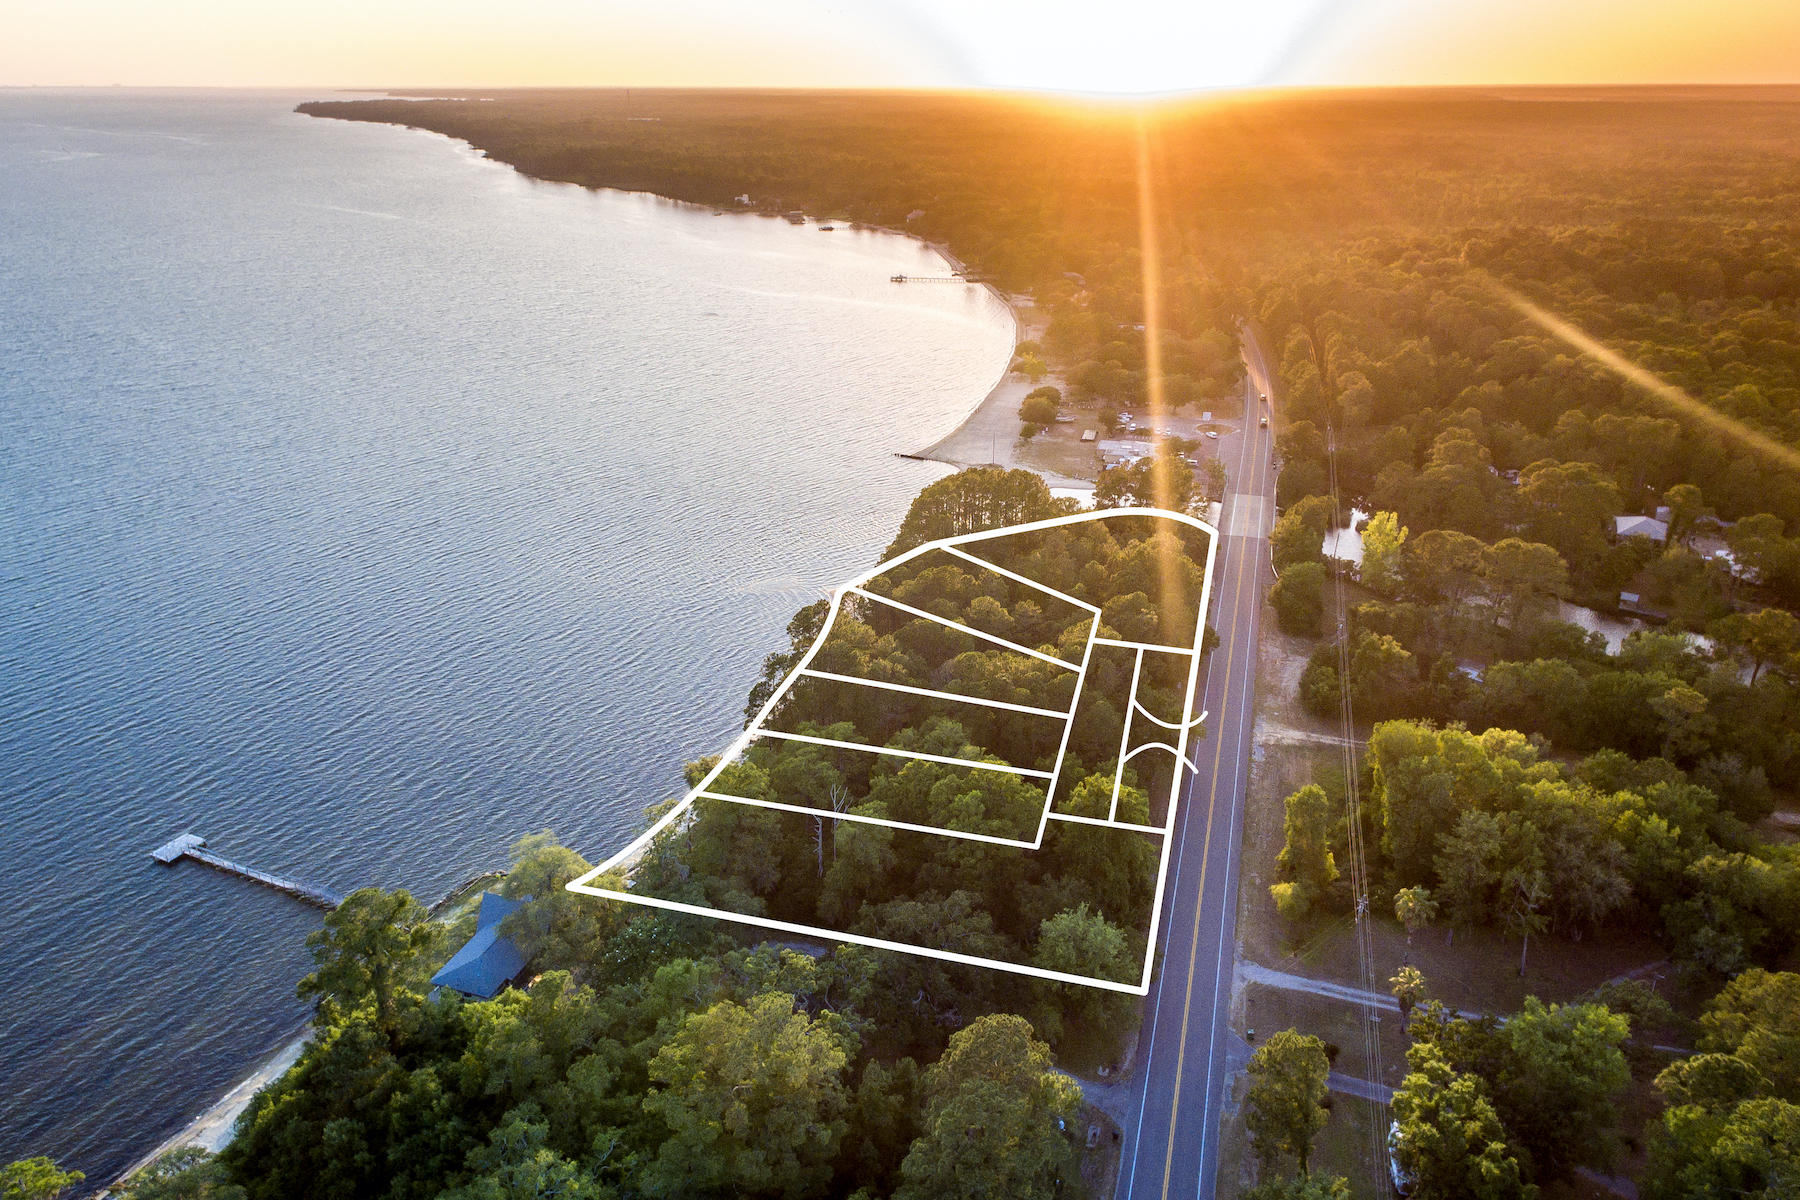 CALLING ALL BUILDERS!  Prime opportunity for an exclusive waterfront community on Walton County's fast growing North Shore.    Walton County development order just approved for six lots with little infrastructure needed.  These six lots face south with glorious views of both the sunrise and sunset over Choctawhatchee Bay.   If you are a builder on the Emerald Coast, this is a great investment opportunity with plenty of profit potential.  Call now for more information!